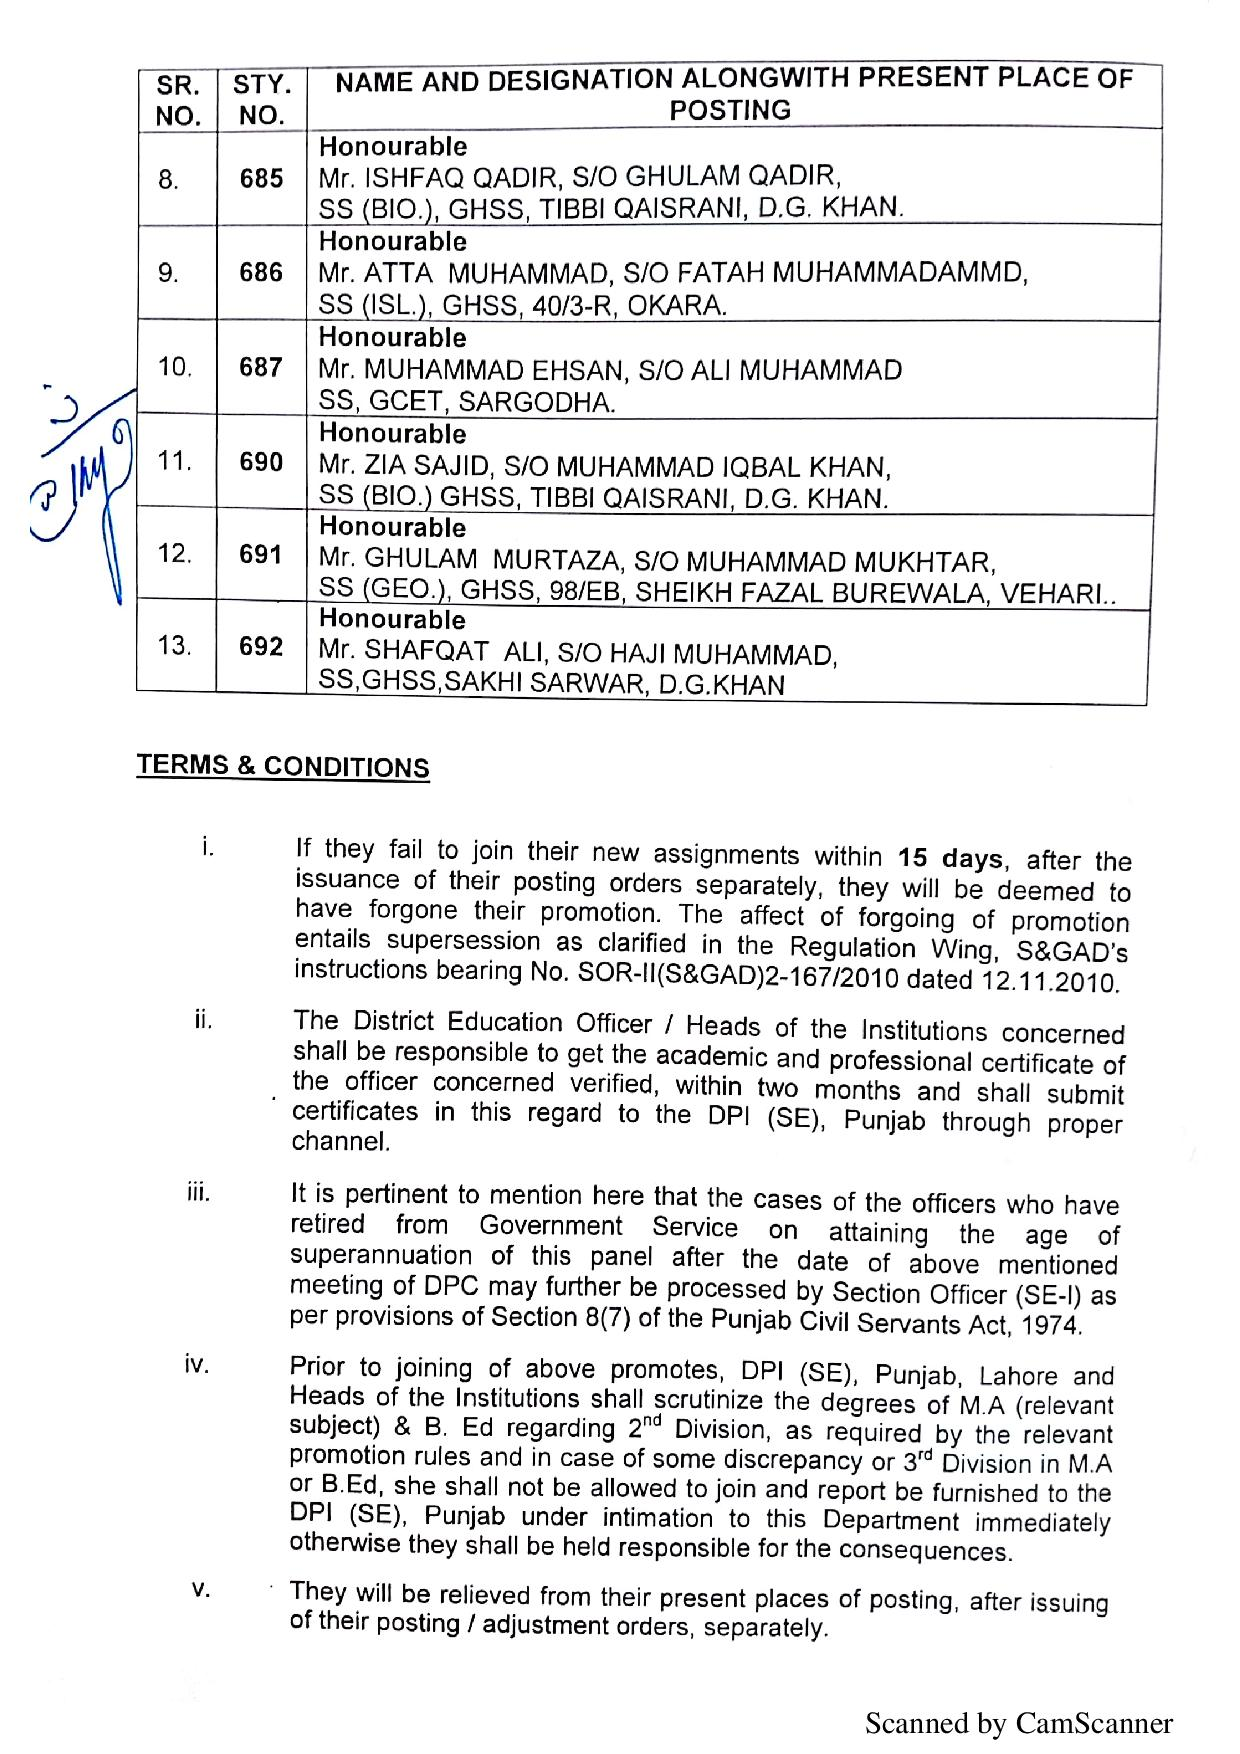 REGULAR PROMOTION of MALE FROM BPS-17 TO BPS-18 IN Punjab School Education Department